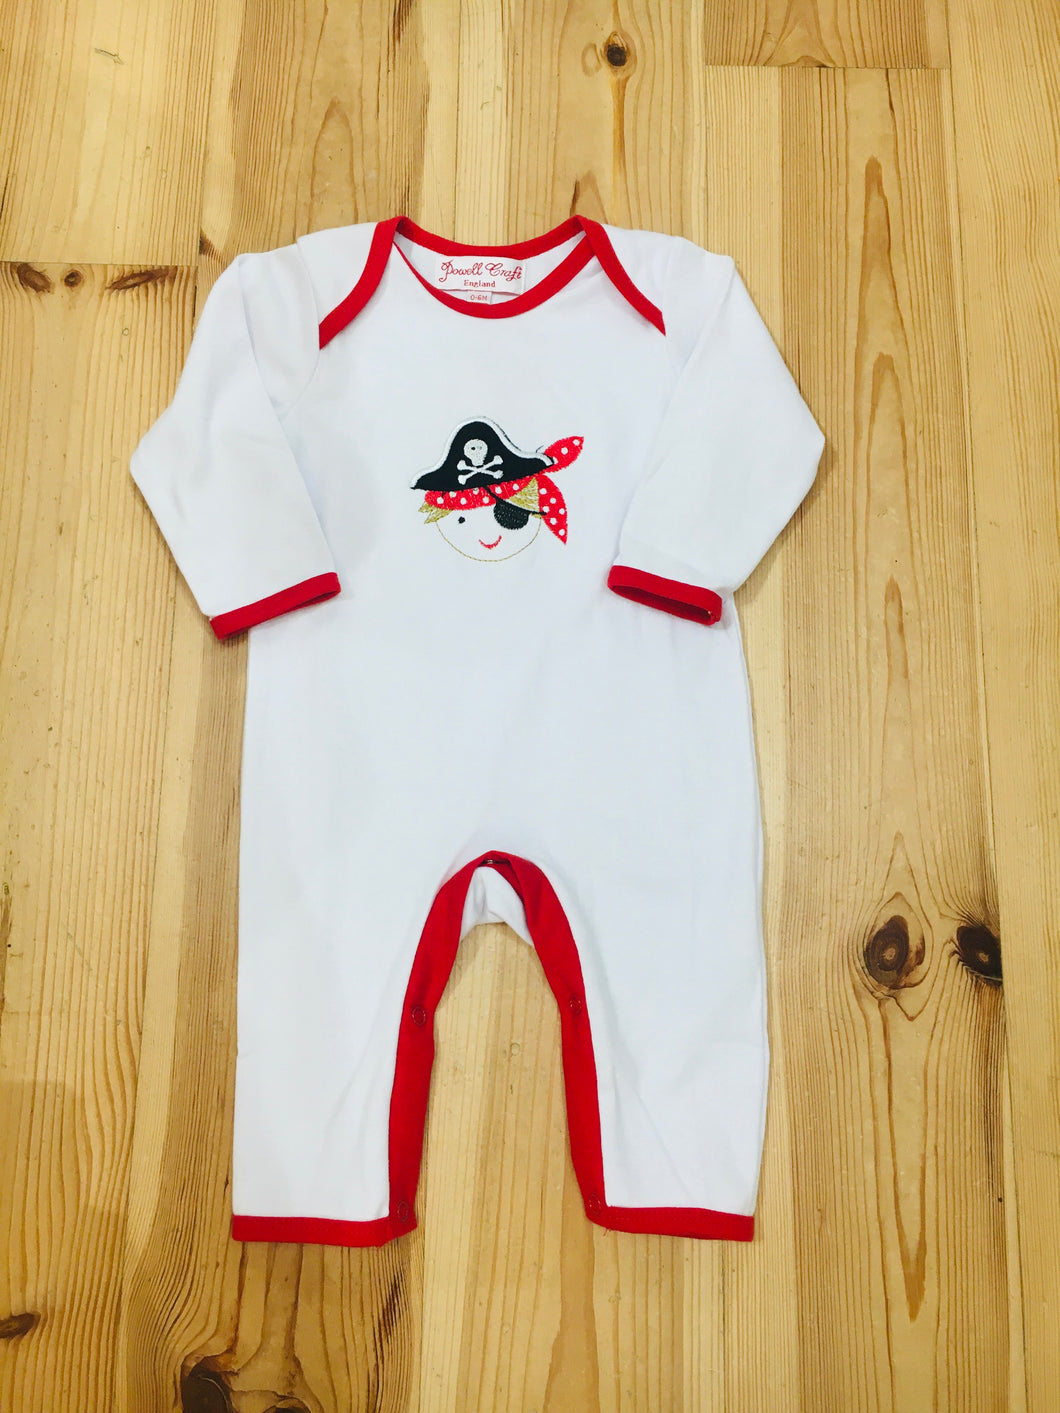 Powell Craft  Babygrow